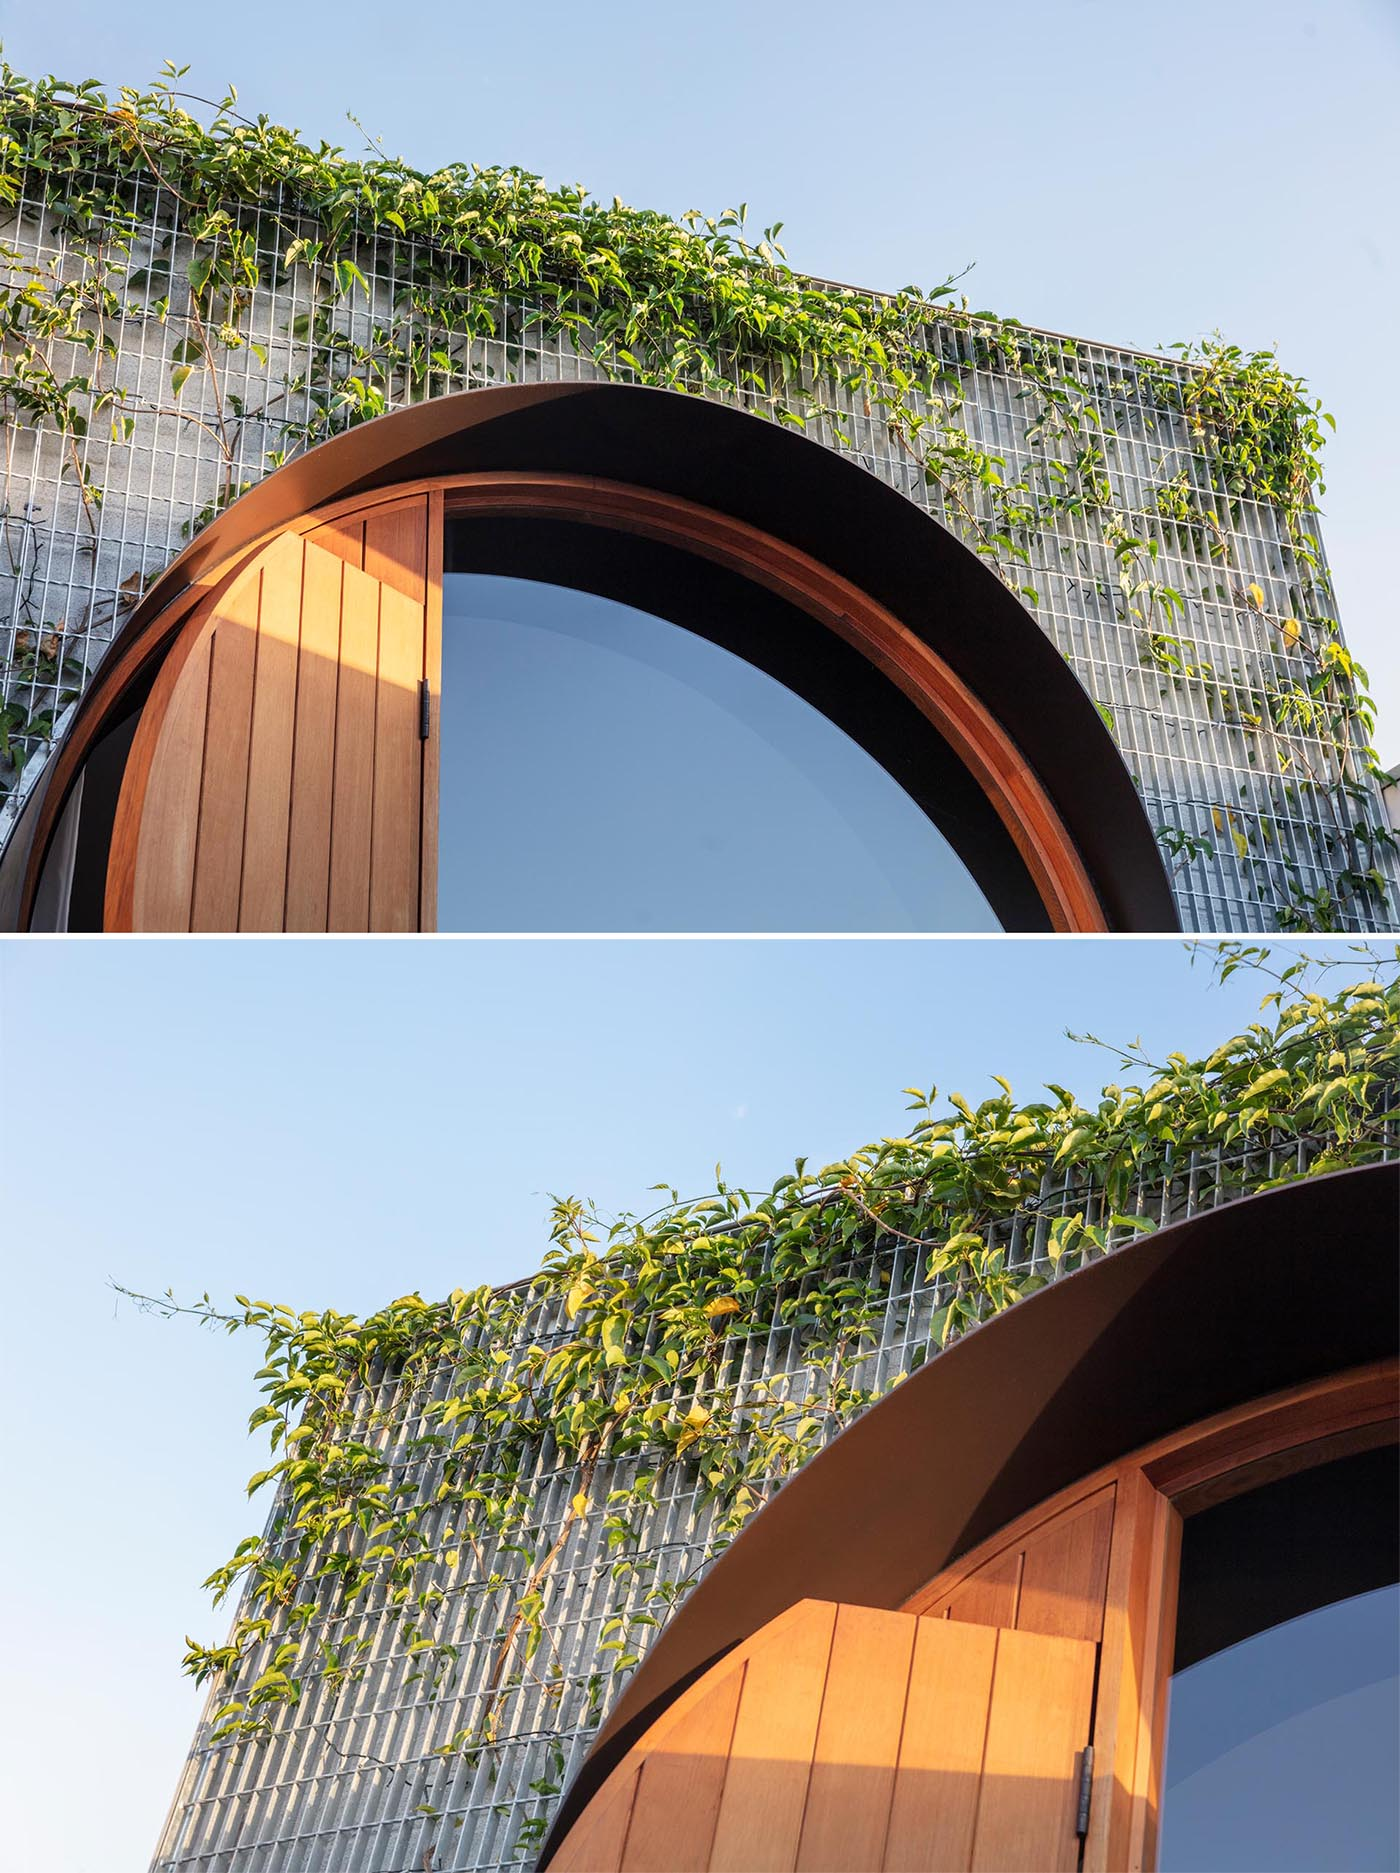 A wall of vines will grow to wrap around this round window.